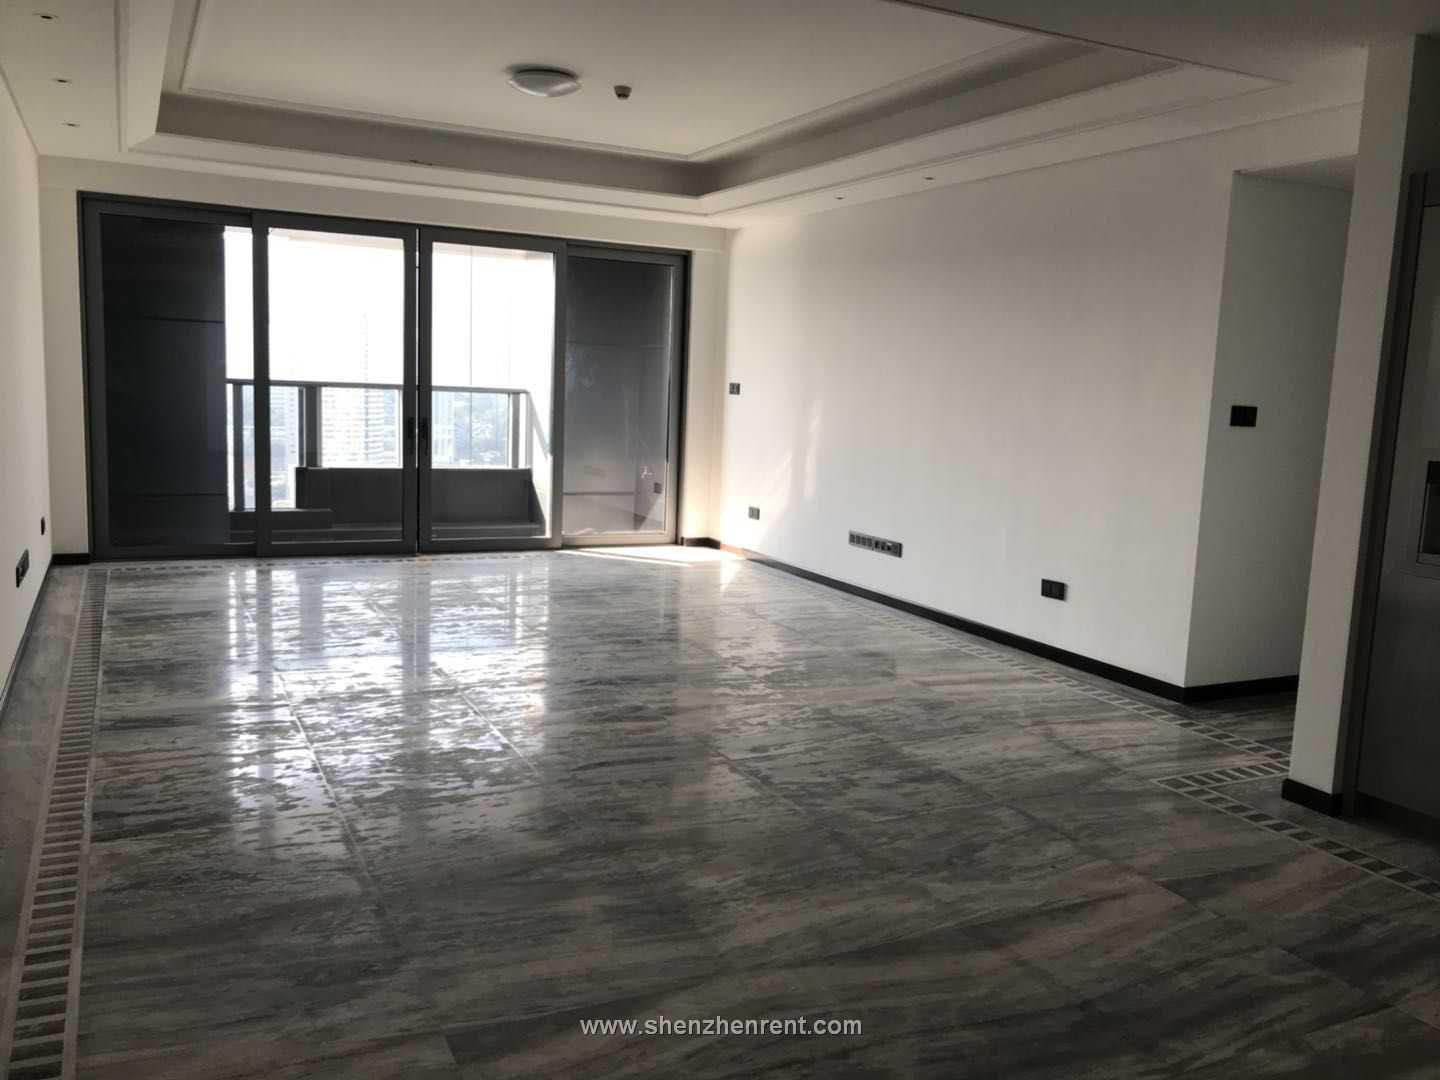 Top level luxurious 4 bedrooms apartment in shekou for rent